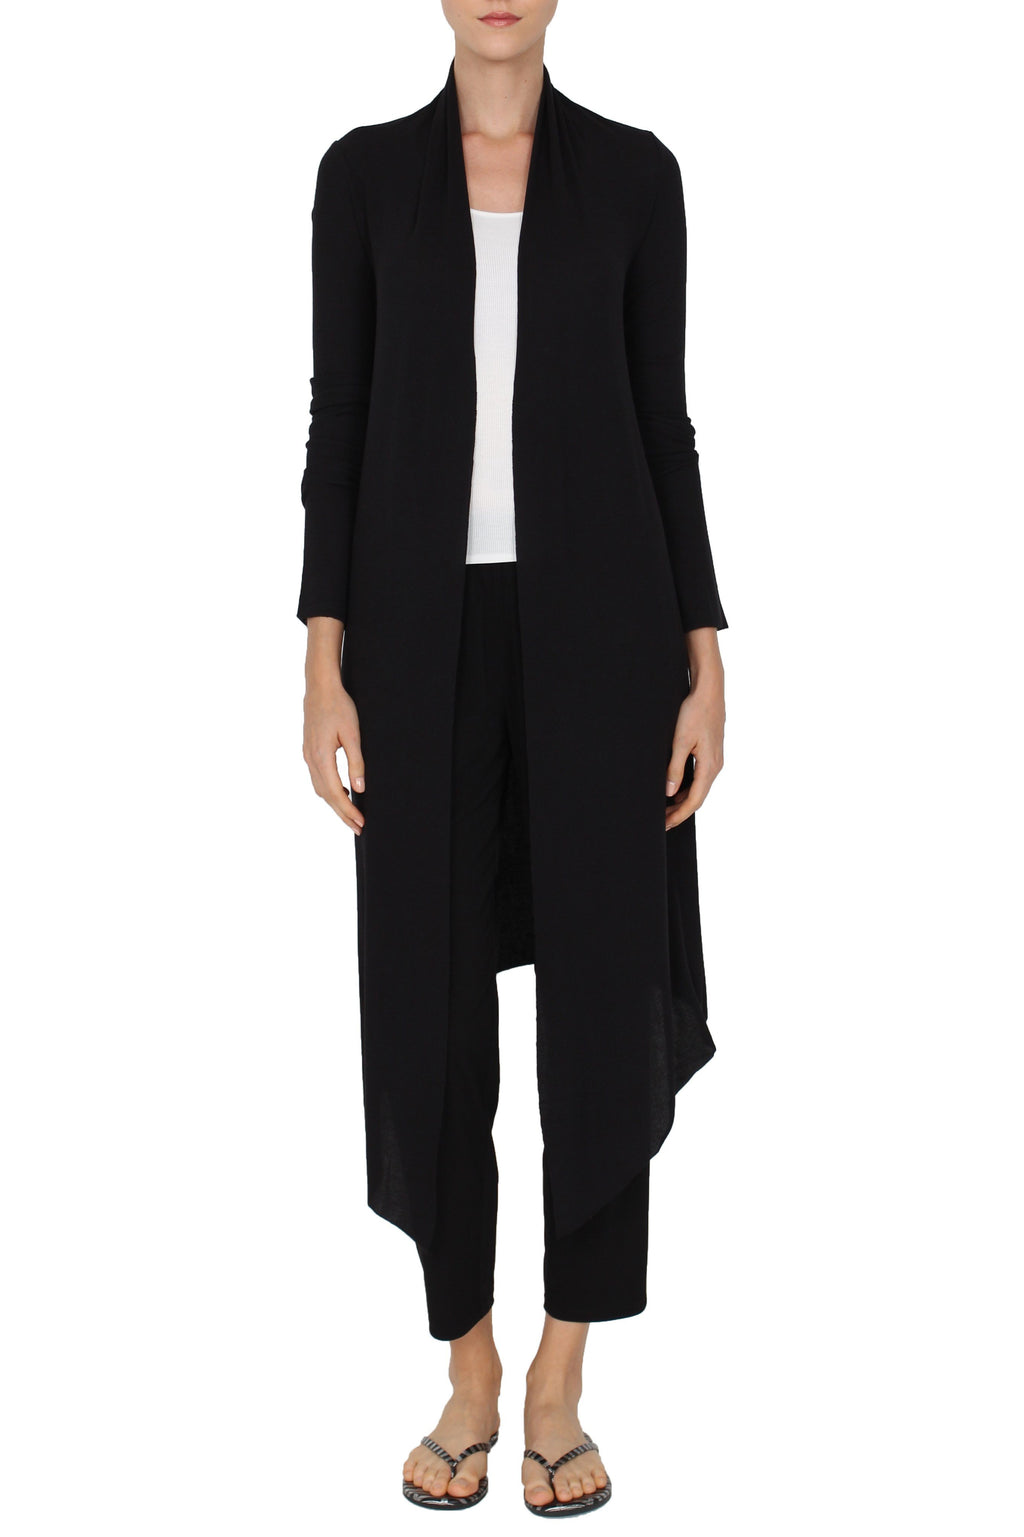 Long Silk Blend Michi Cardigan Knitwear Marie France Van Damme Black One Size